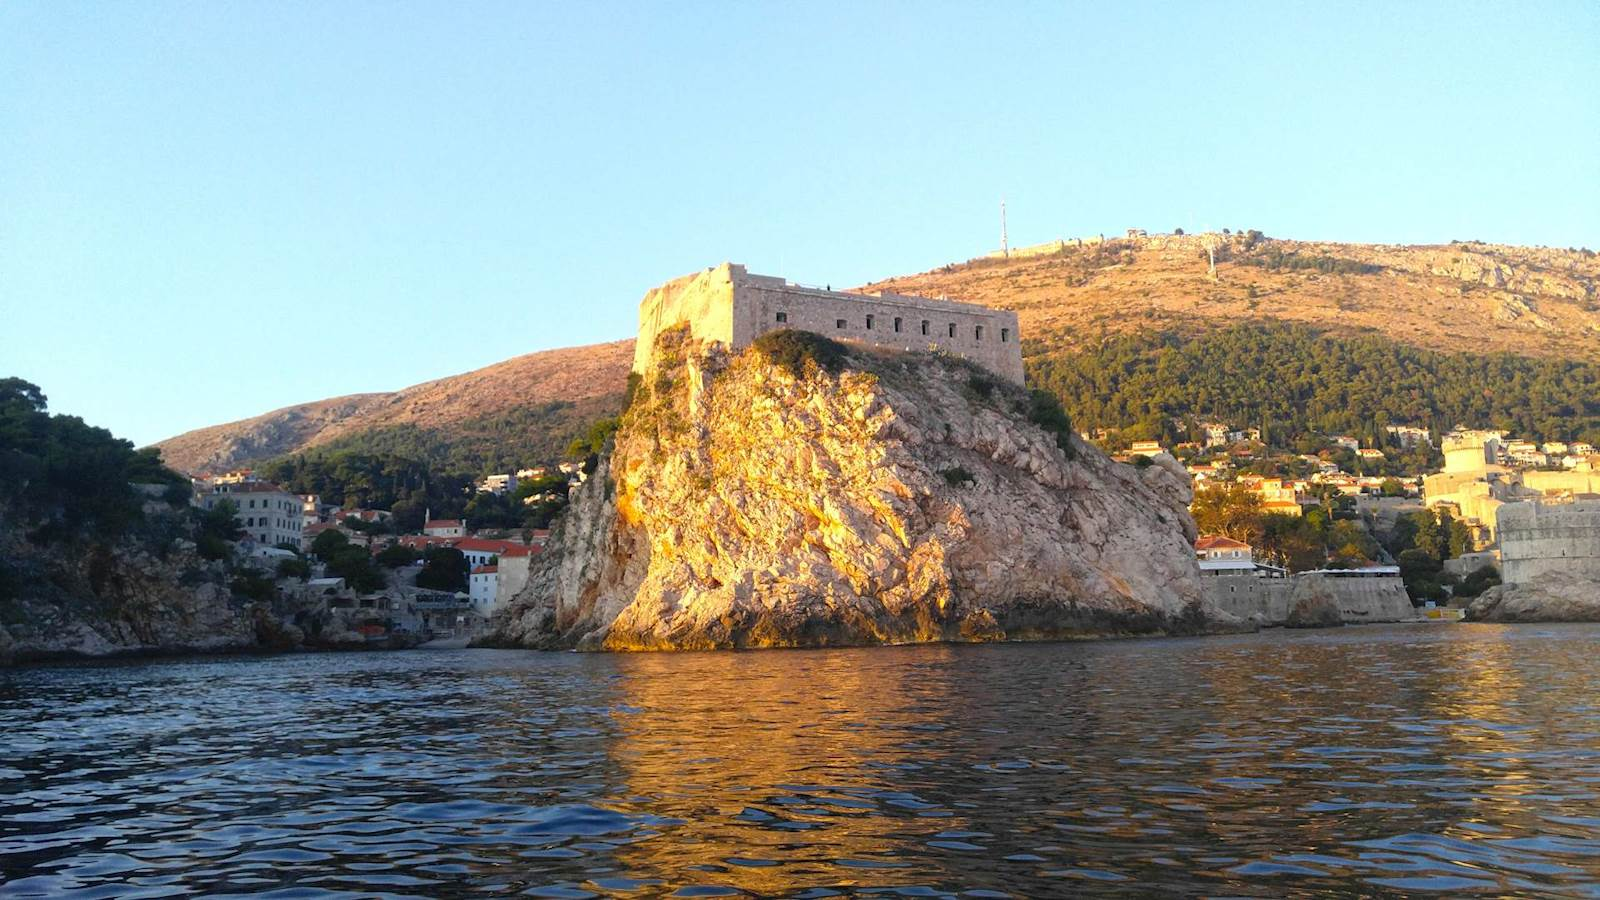 -images-excursions-elaphite-islands-speed-boat-excursion--zy-02-private-boat-tour-dubrovnik-elafiti.jpg